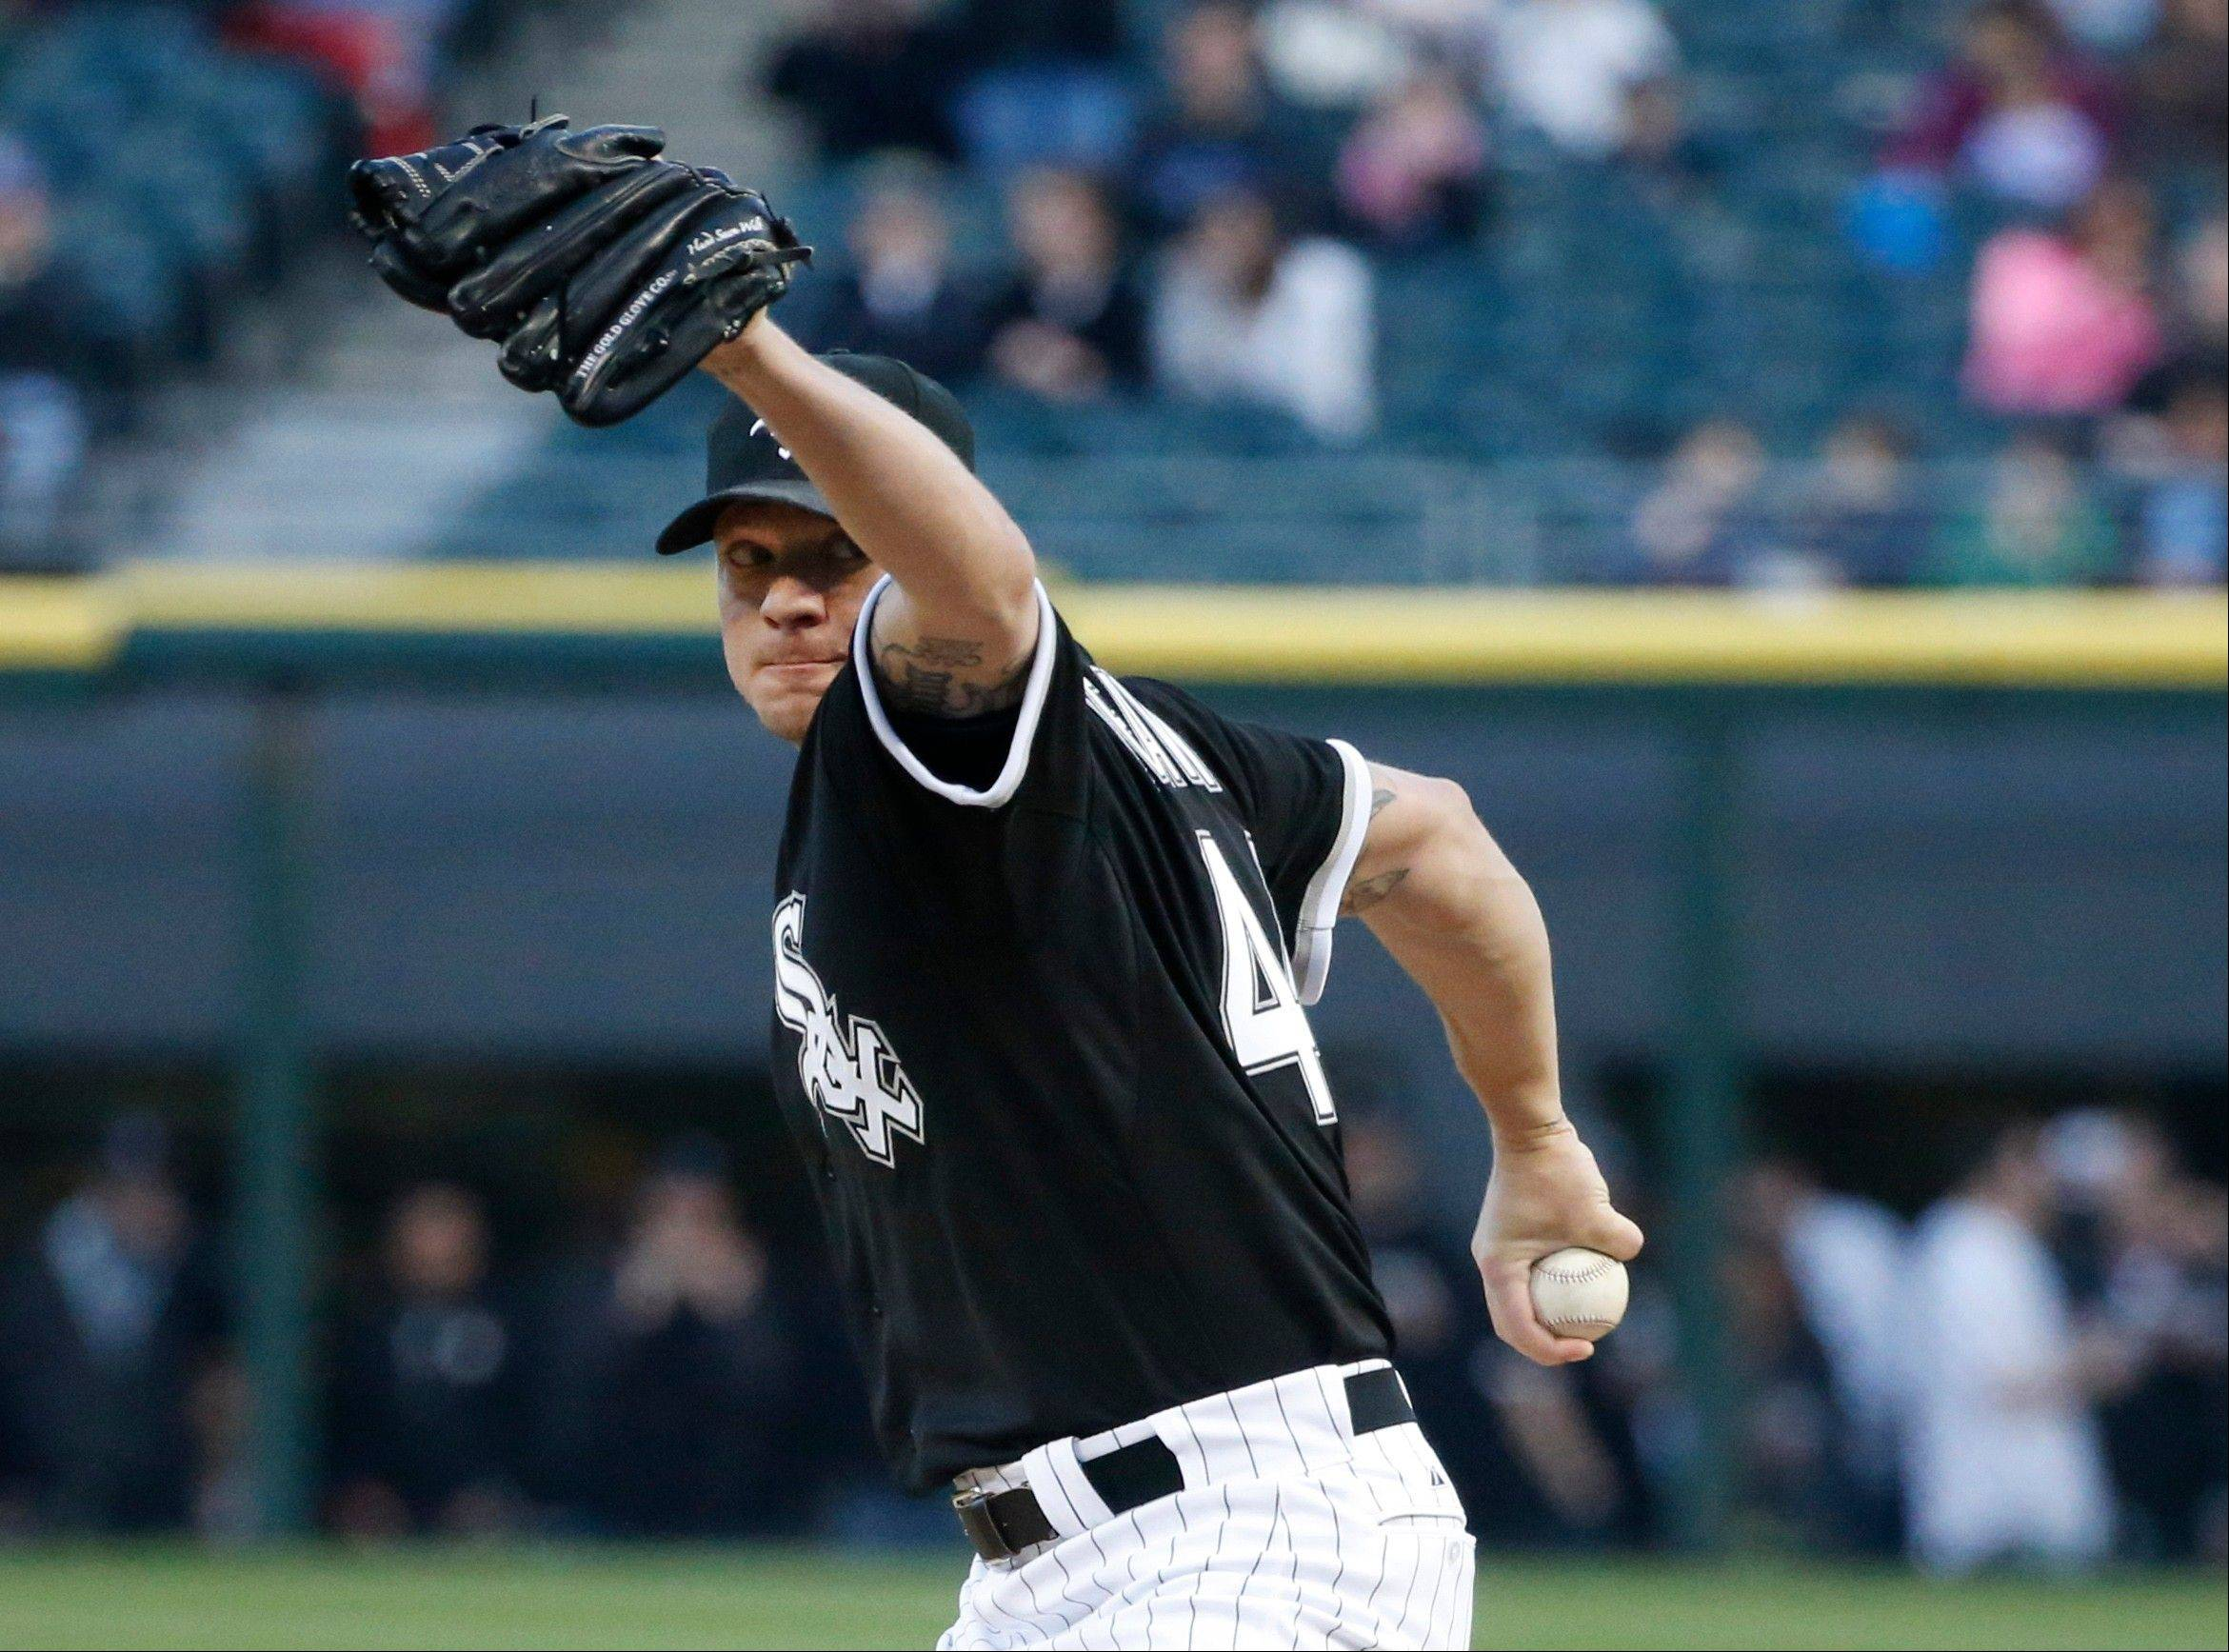 Chicago White Sox starting pitcher Jake Peavy delivers during the first inning of a baseball game against the Tampa Bay Rays Friday, April 26, 2013, in Chicago. (AP Photo/Charlie Arbogast)